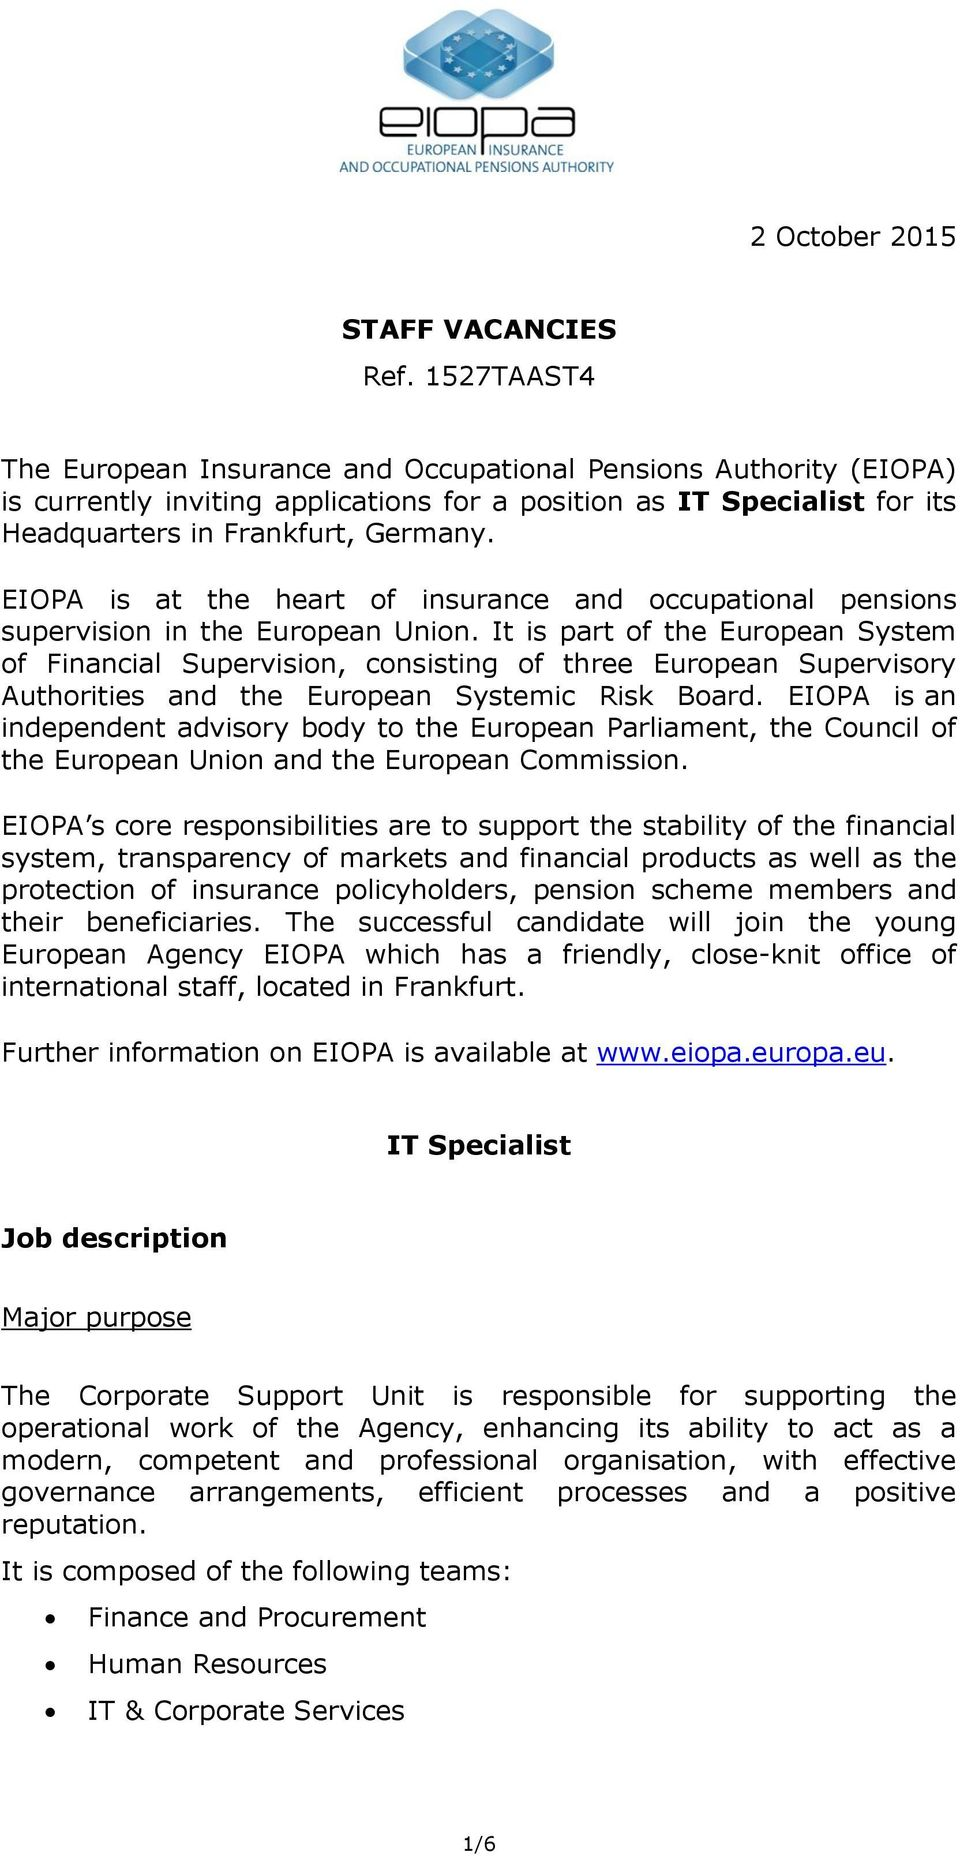 EIOPA is at the heart of insurance and occupational pensions supervision in the European Union.